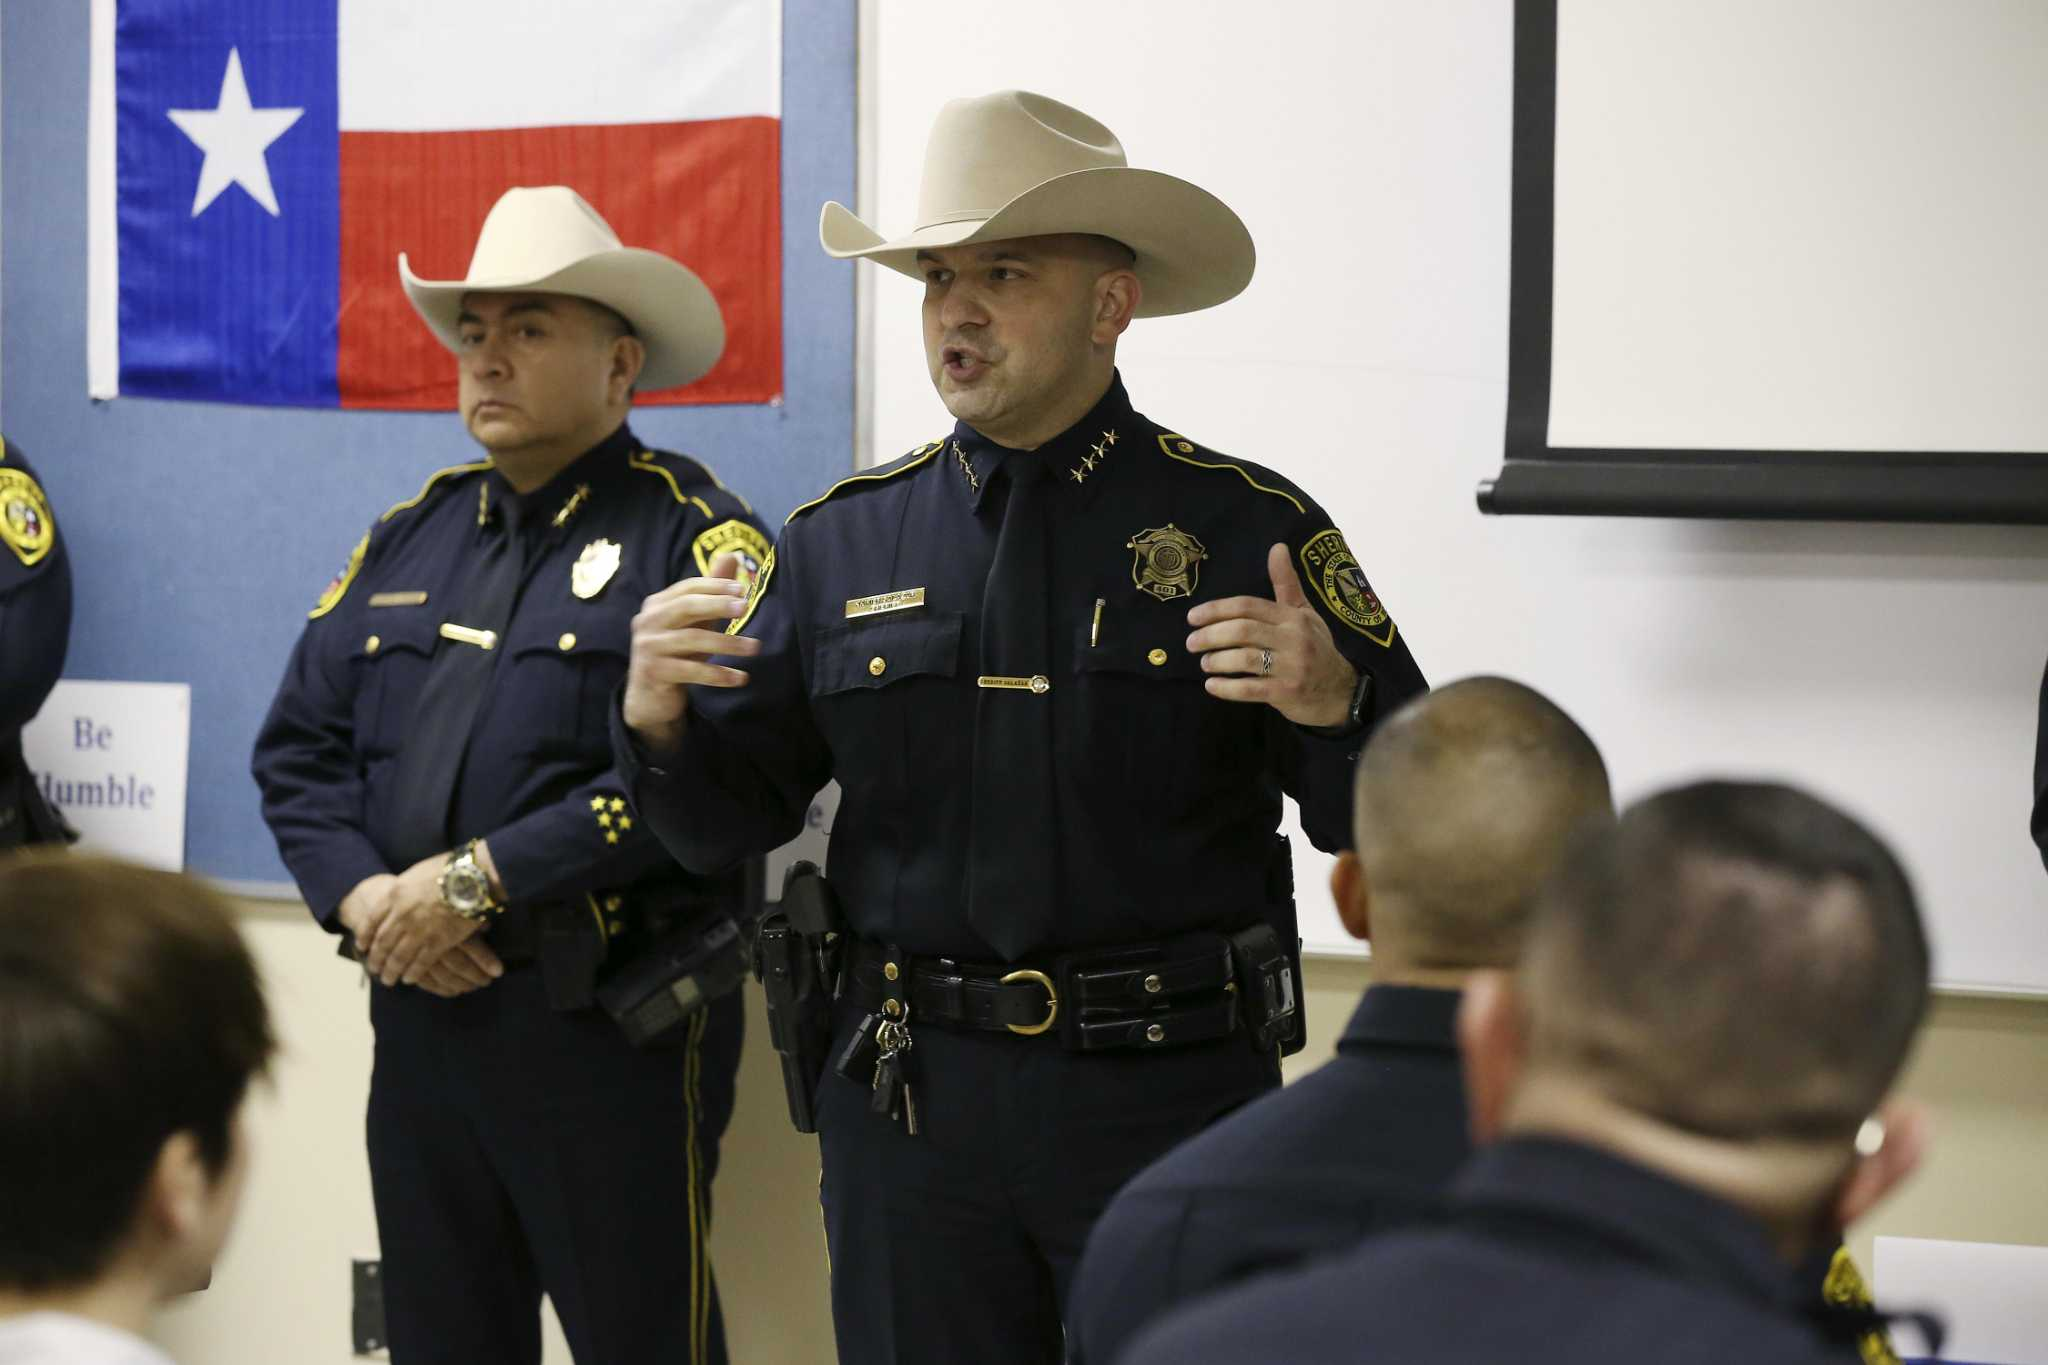 Sheriff S Internal Review Welcome San Antonio Express News